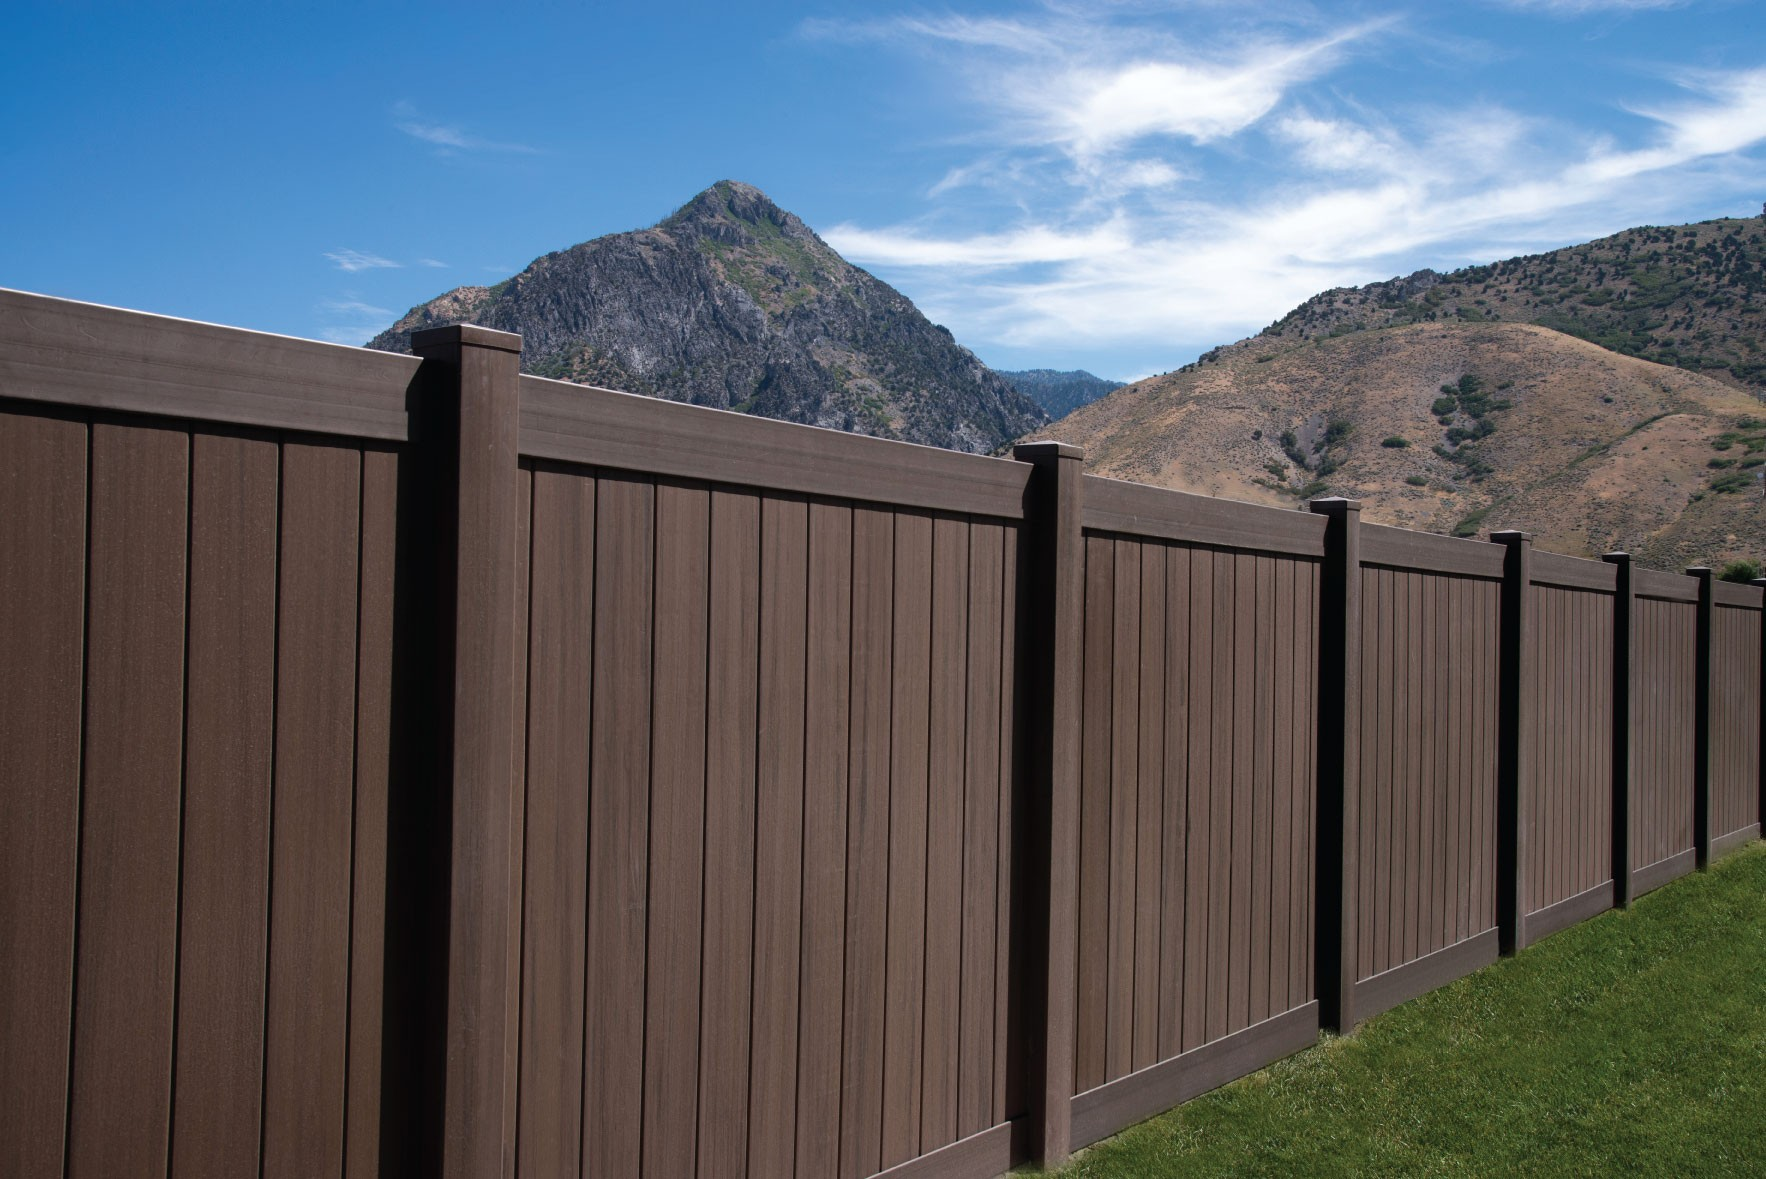 6 Tall Dark Walnut Vinyl Privacy Fence